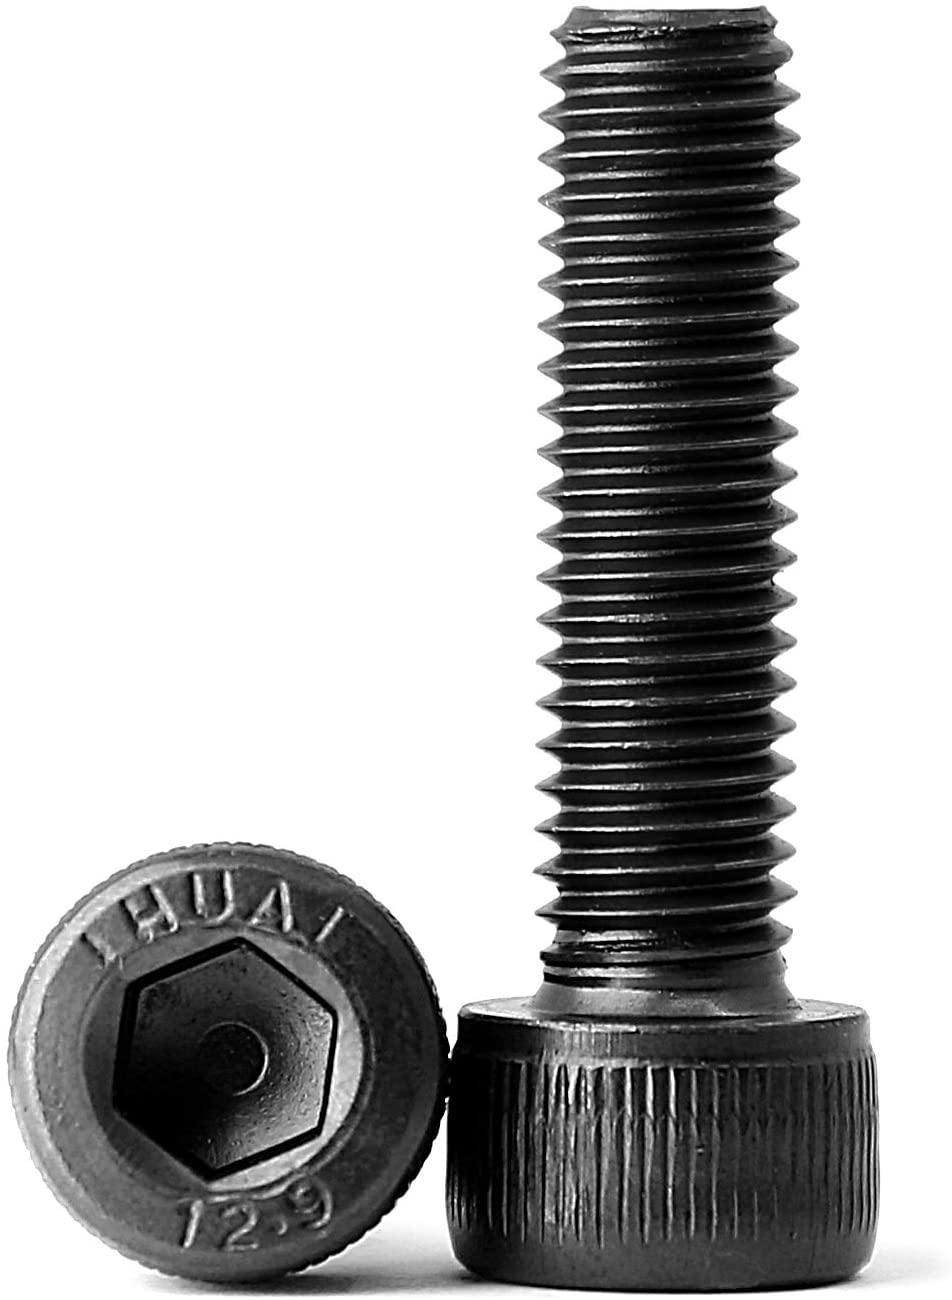 10.9 Grade Alloy Steel Black Oxide Finish M5 x 8mm Button Head Socket Cap Screws Machine Thread Quantity 50 Allen Socket Drive